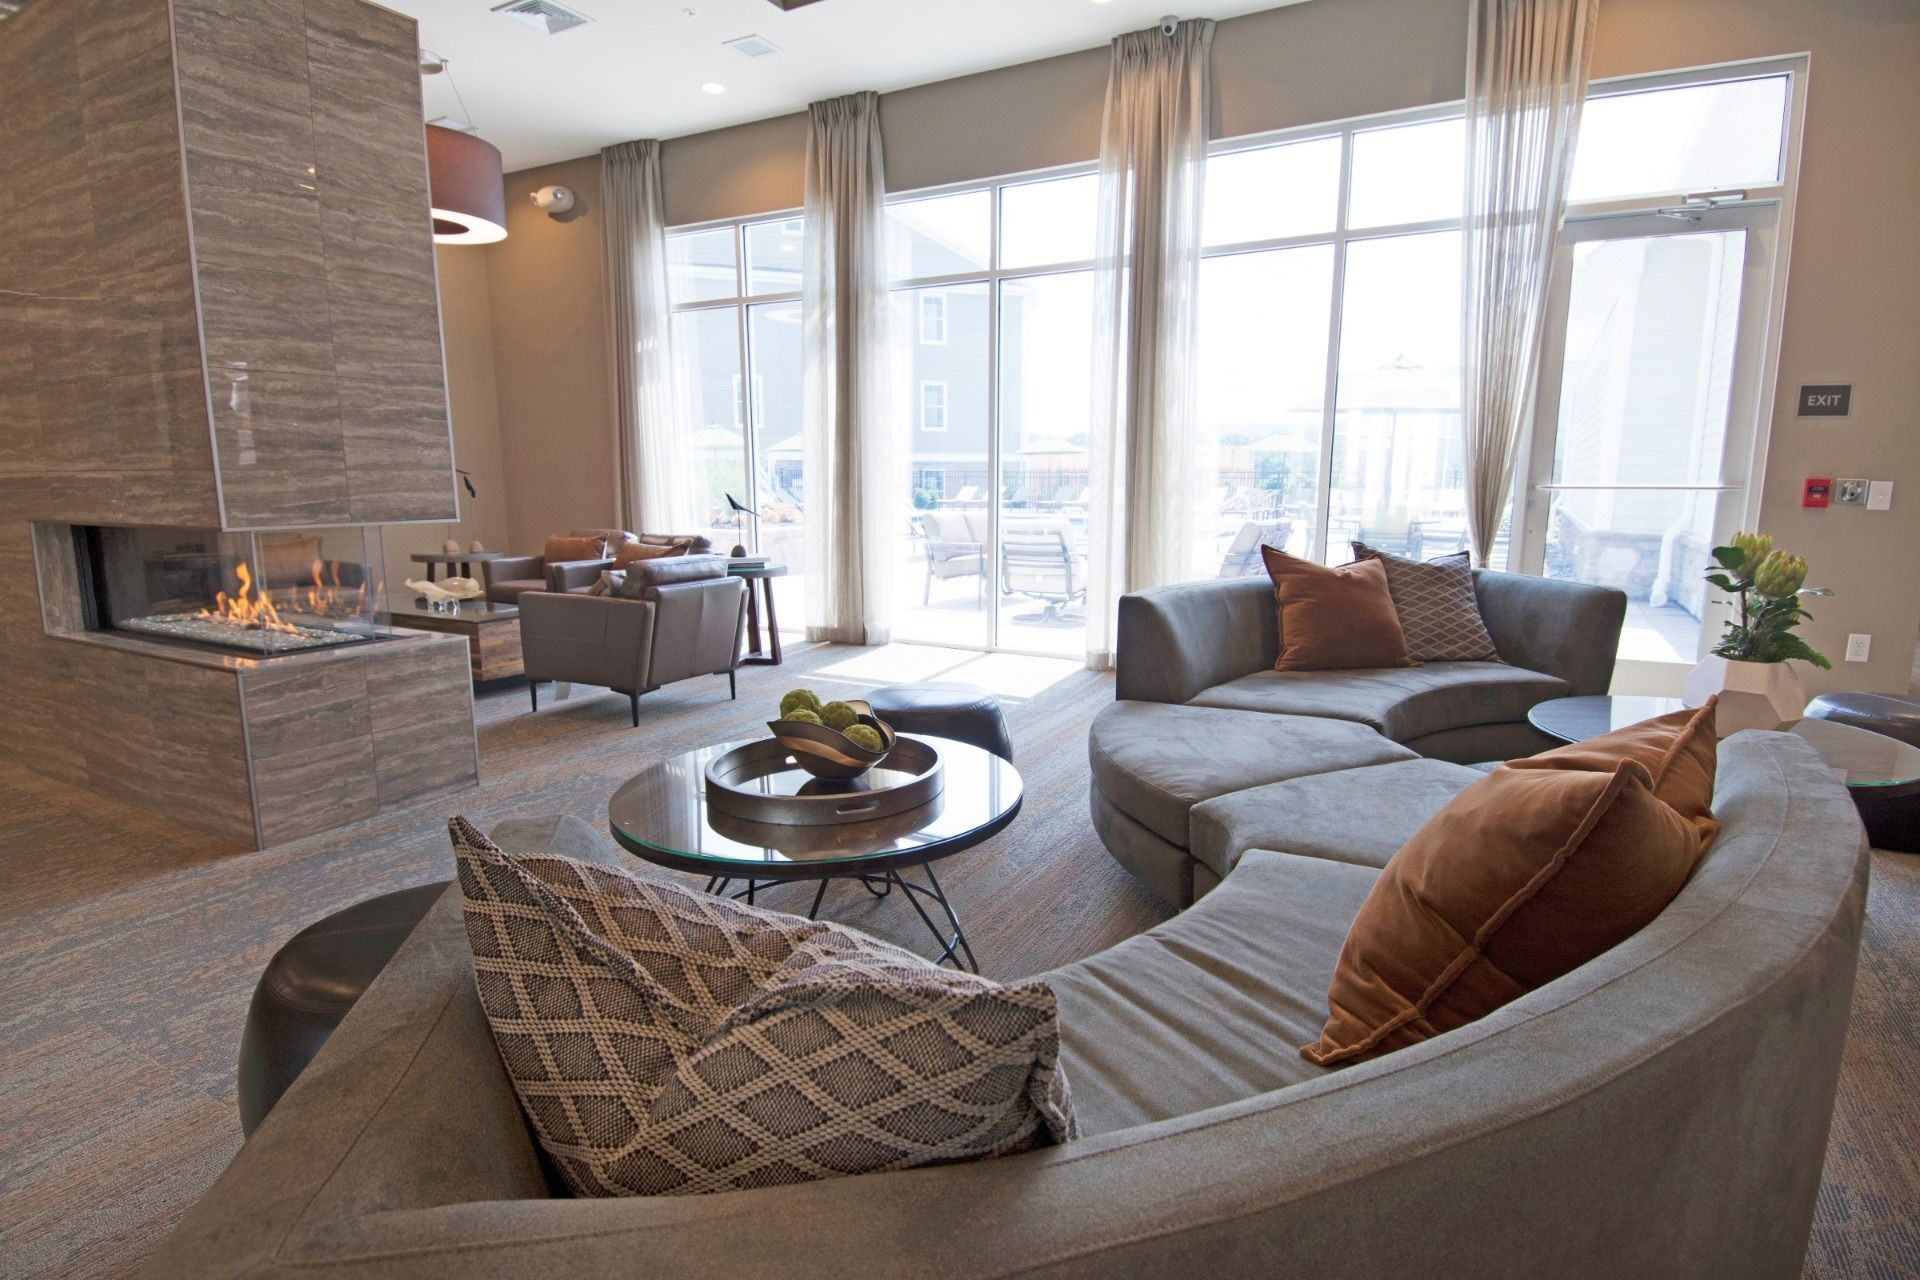 Upscale clubhouse seating and coffee tables with modern fireplace